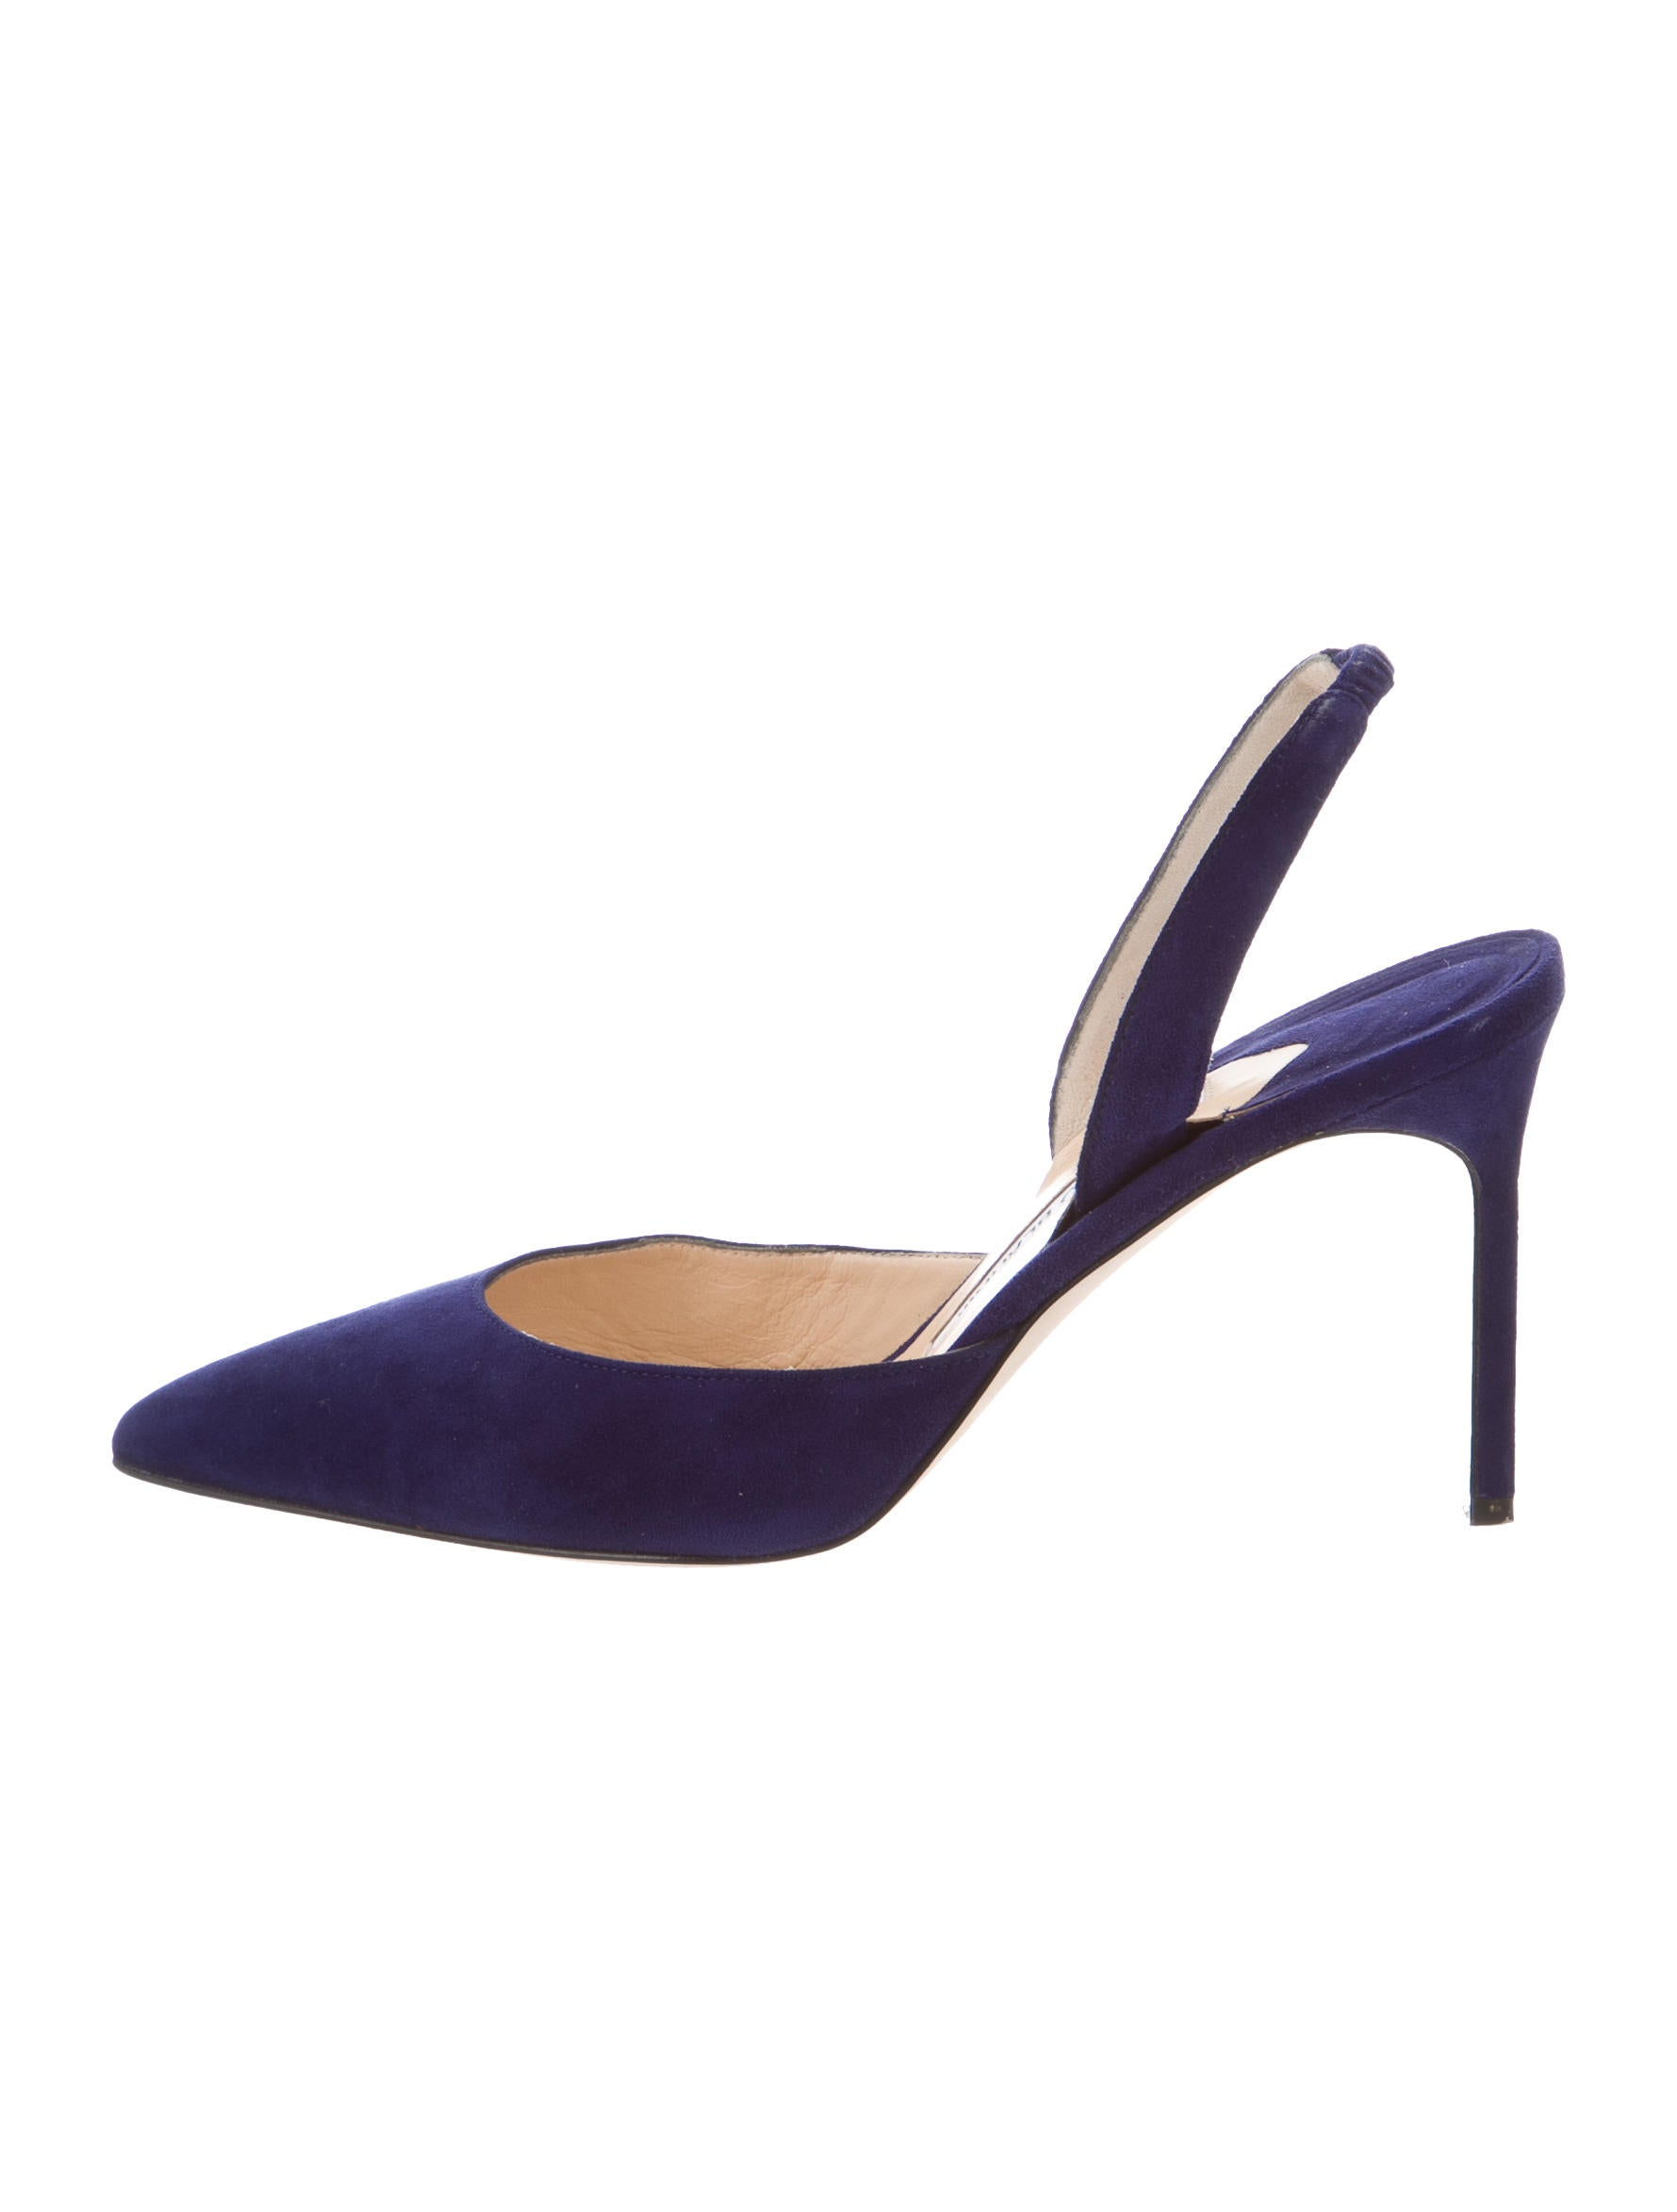 Manolo blahnik carolyne slingback pumps shoes moo66180 for 66180 1